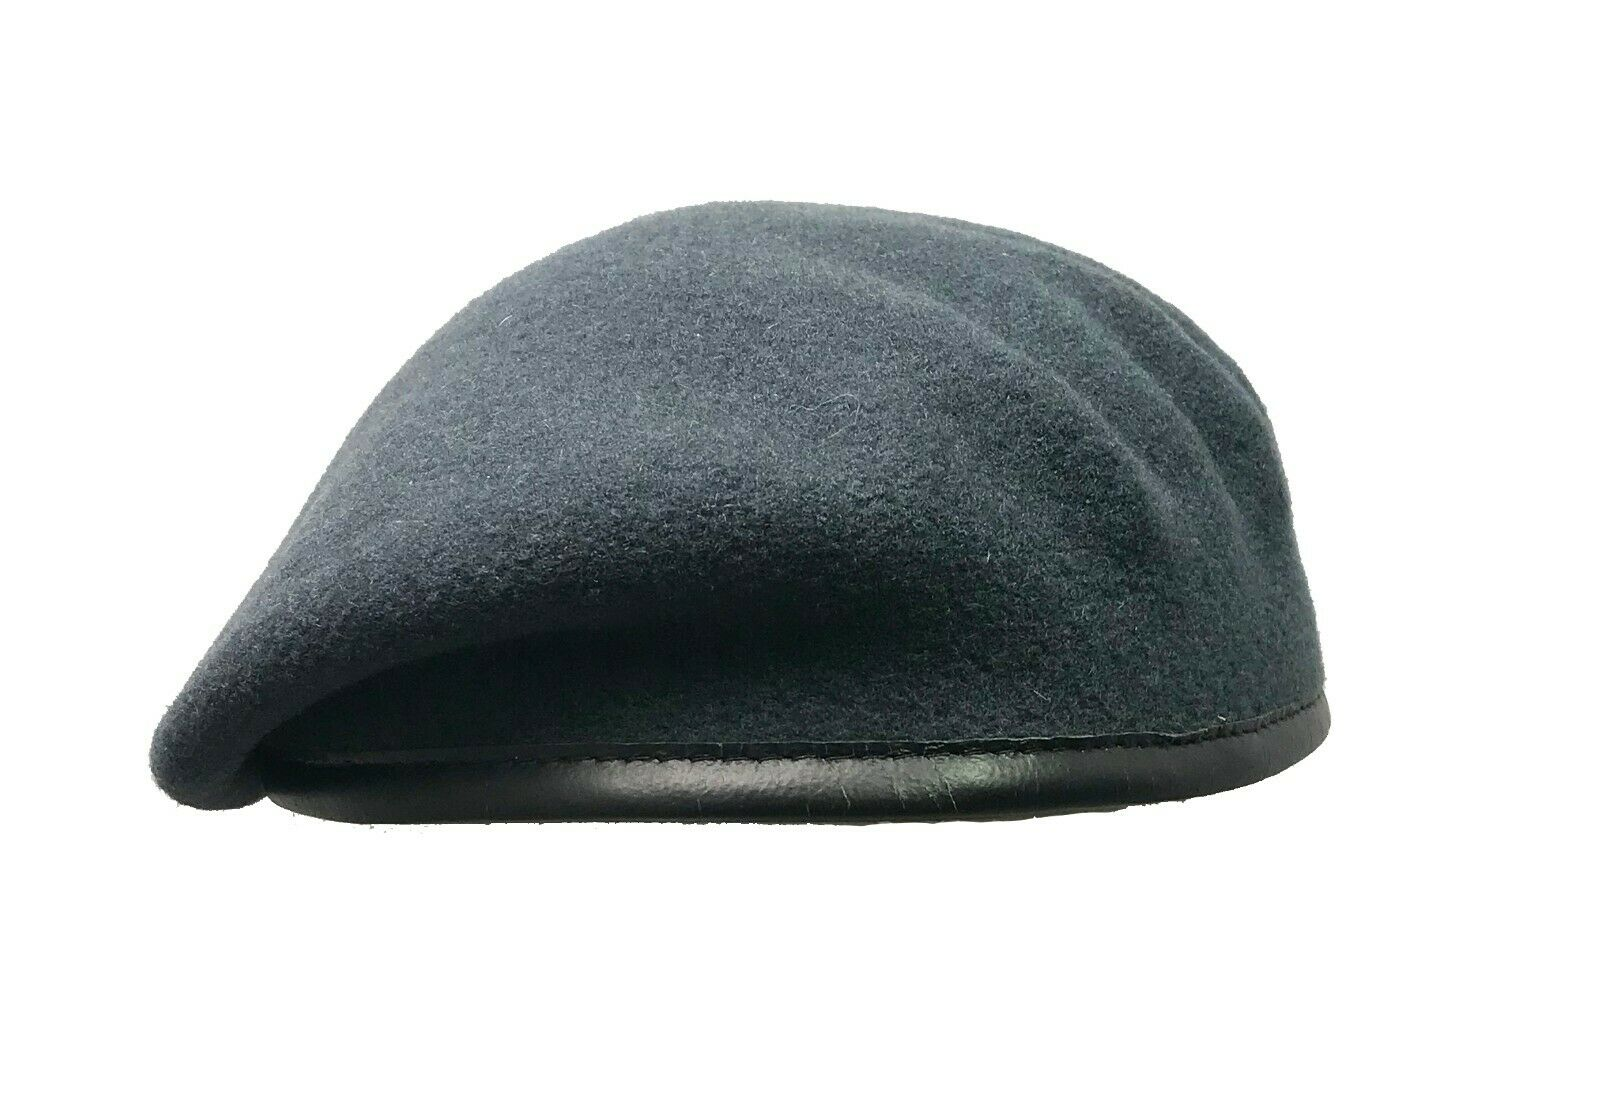 COMMANDO Brand Small Crown New Green Military Beret Pure Wool